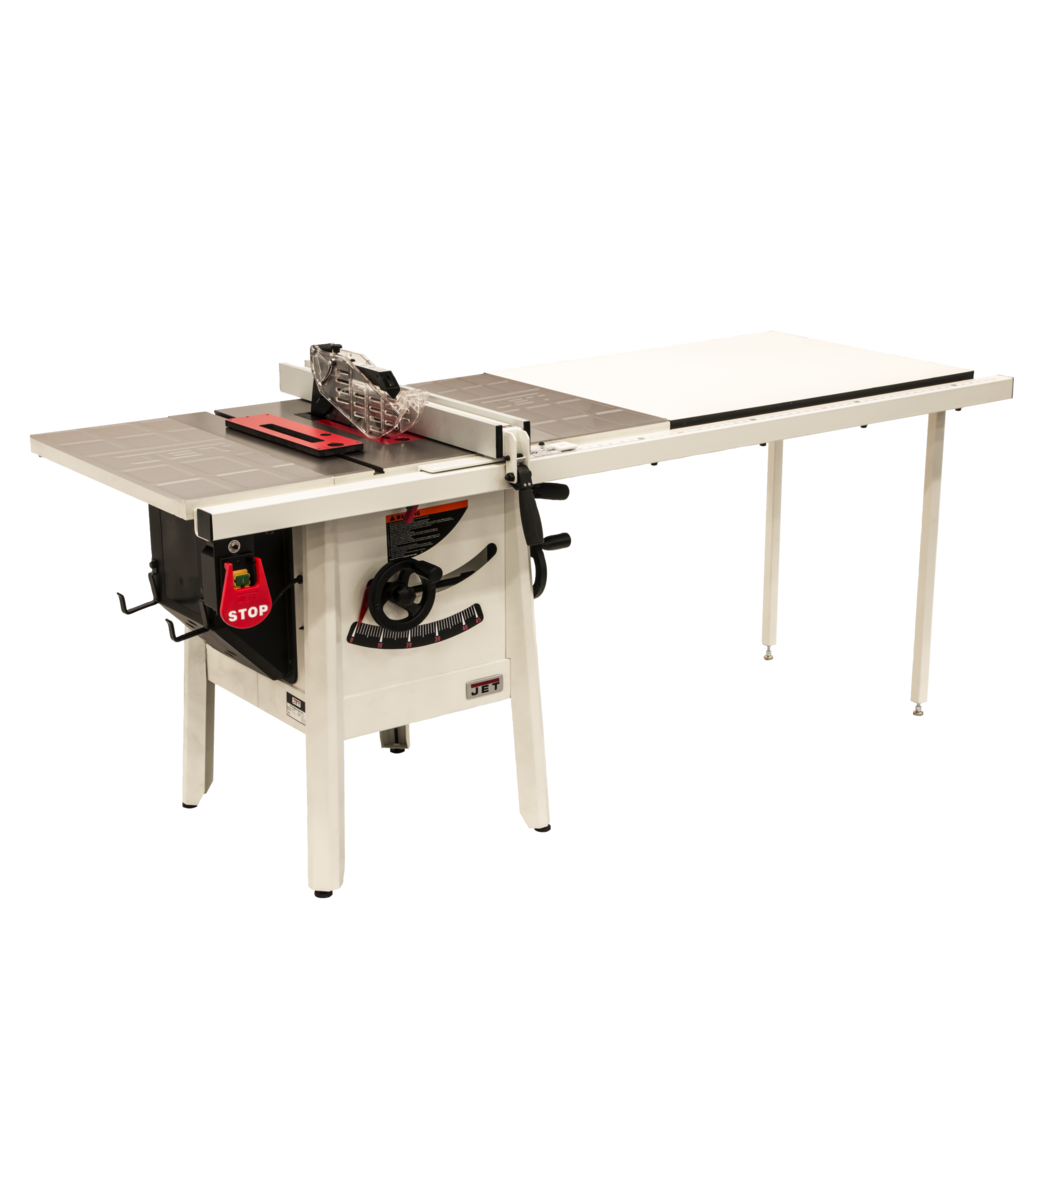 "The JPS-10 1.75 HP 230V 52"" Proshop Tablesaw with Steel wings"